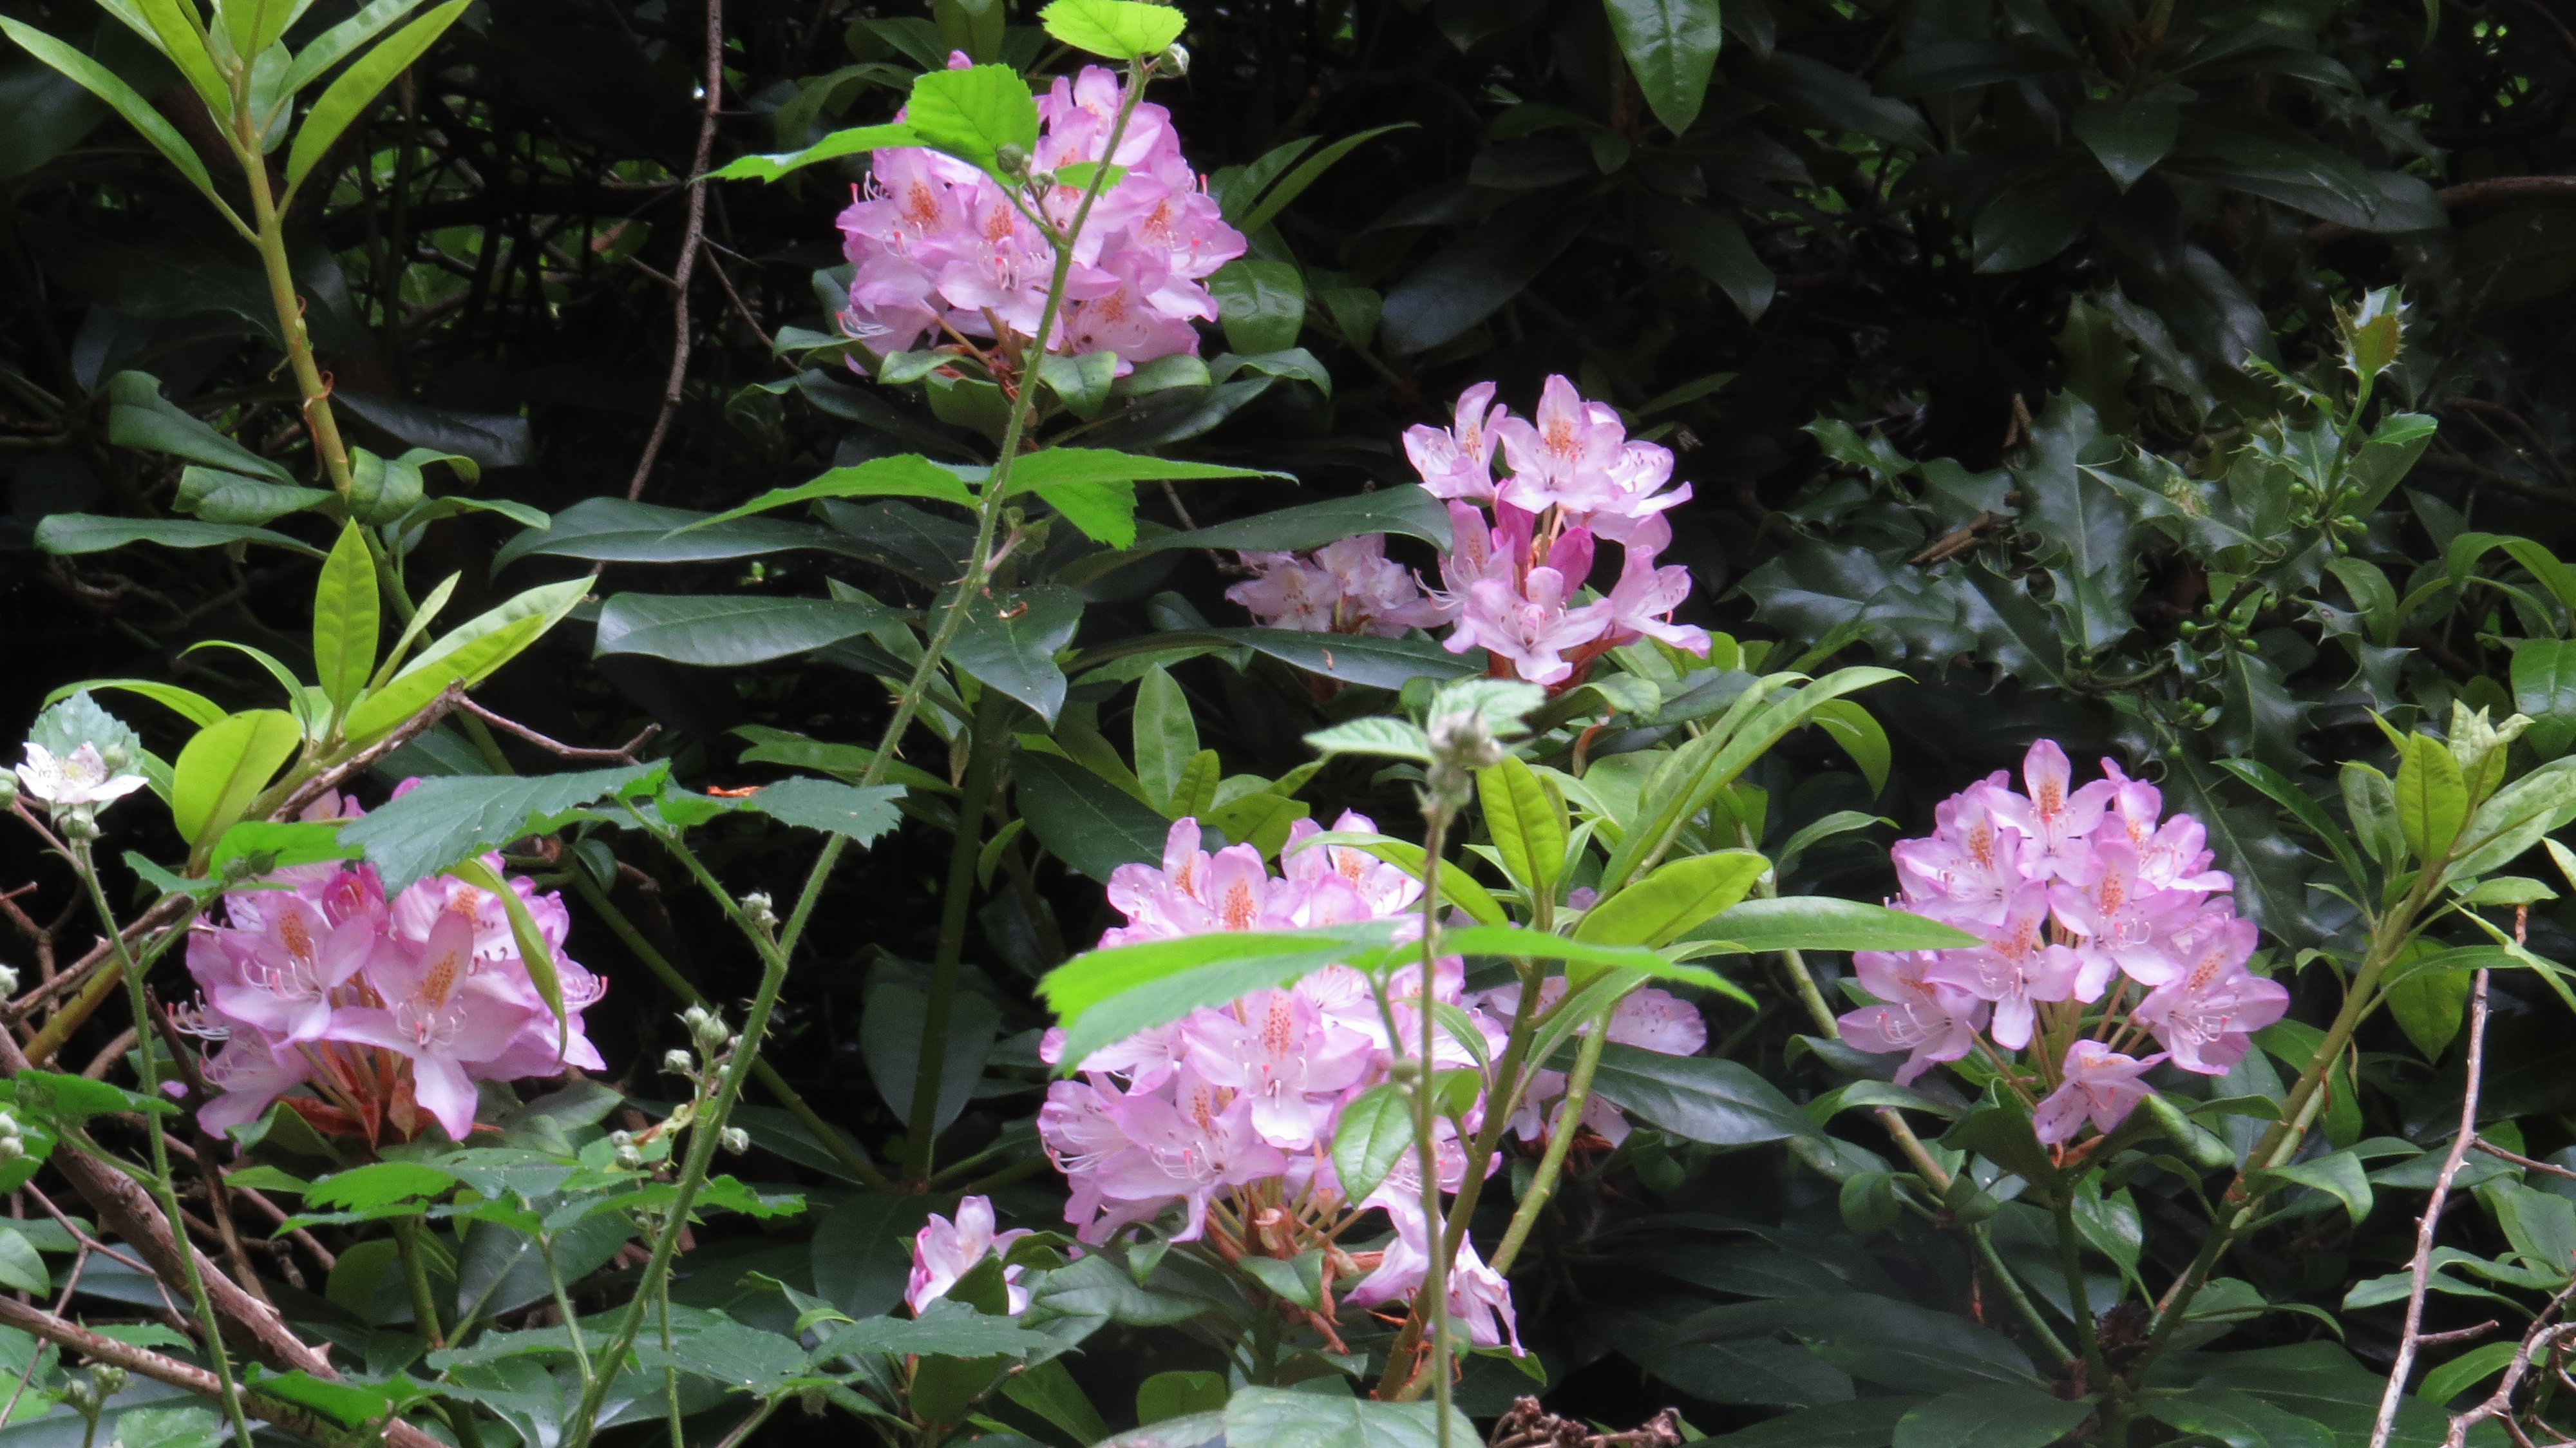 rhododendron women Results 1 - 48 of 205  shop ebay for great deals on rhododendron bushes, shrubs & hedging plants  you'll find new or used products in rhododendron bushes.